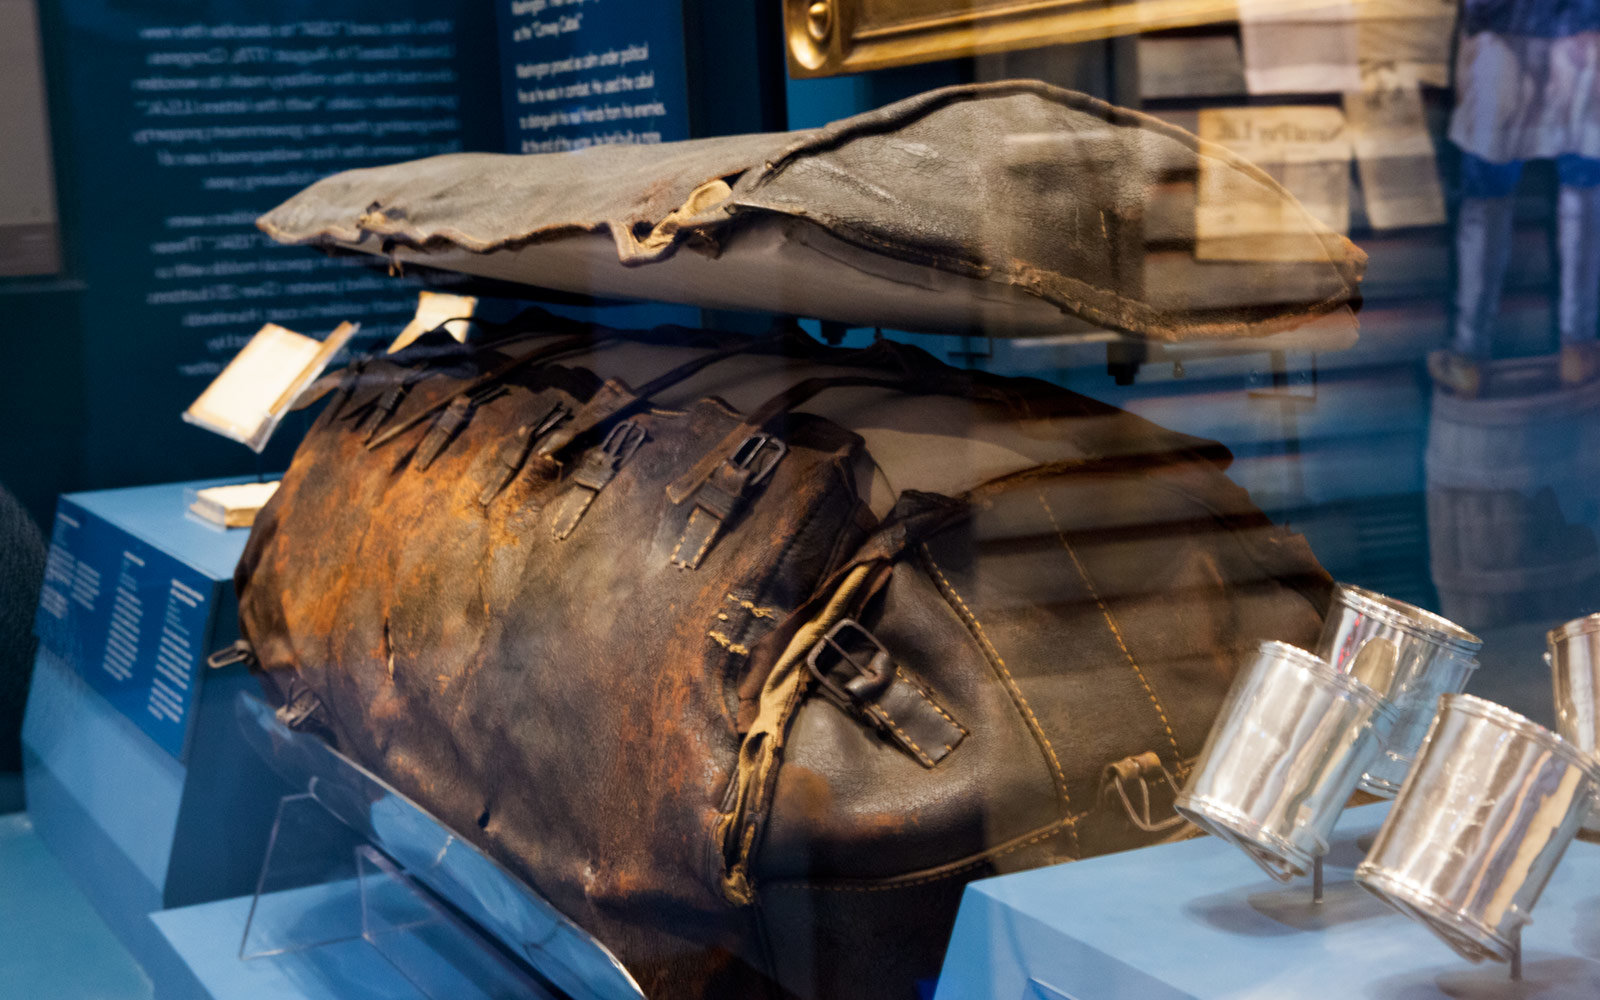 Washington's Luggage, Museum of the American Revolution, Philadelphia, Pennsylvania